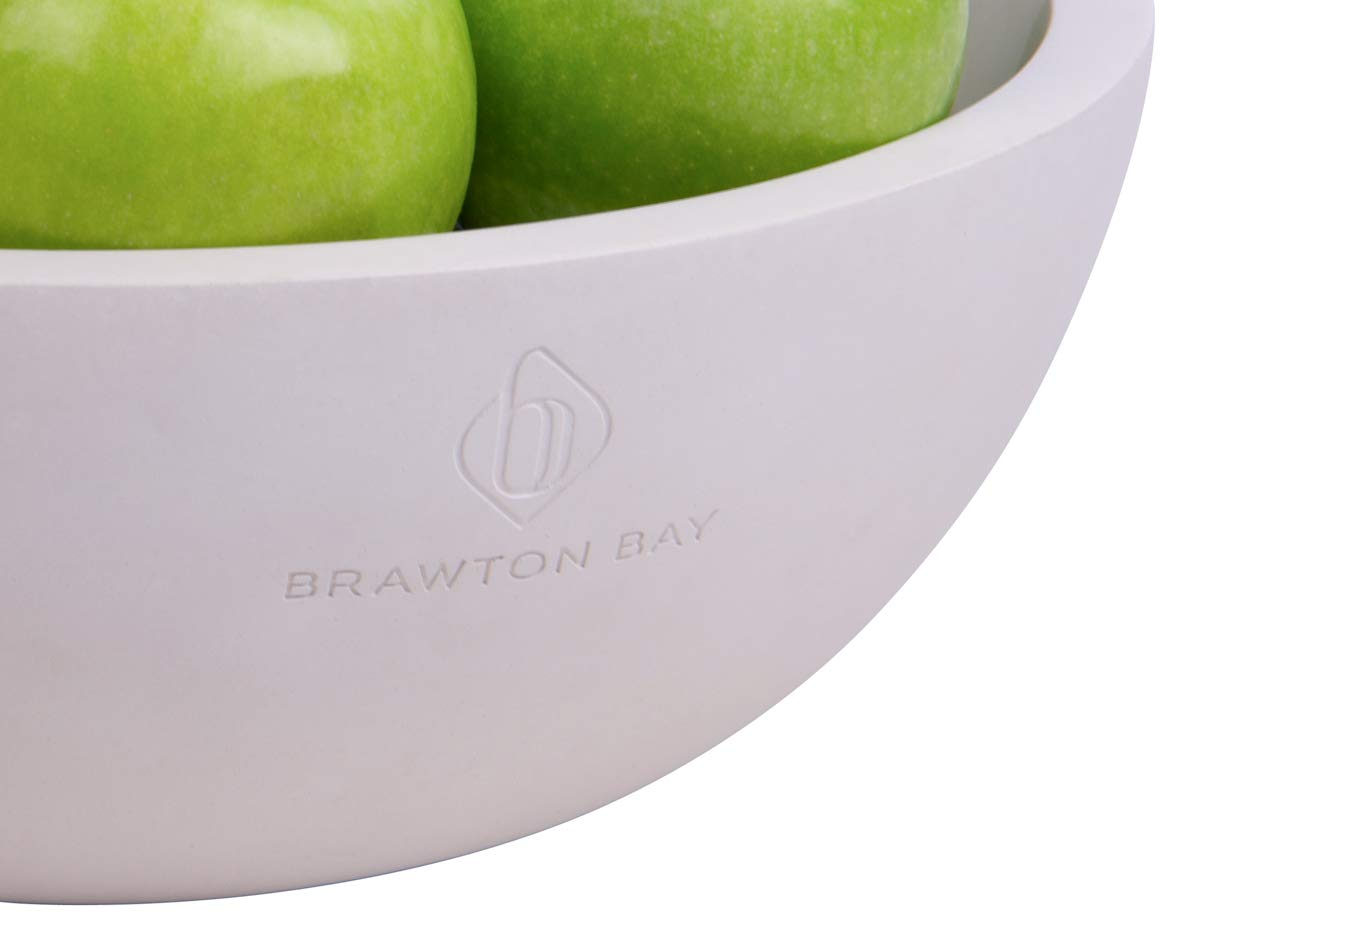 Decorative Fruit Bowl for Kitchen or Dining Room, Concrete, White - Extra Large Food Bowls for Snacks, Candy - Handmade Kitchen Accessories for Tables and Countertops, 12'' Diameter by Brawton Bay (Image #9)